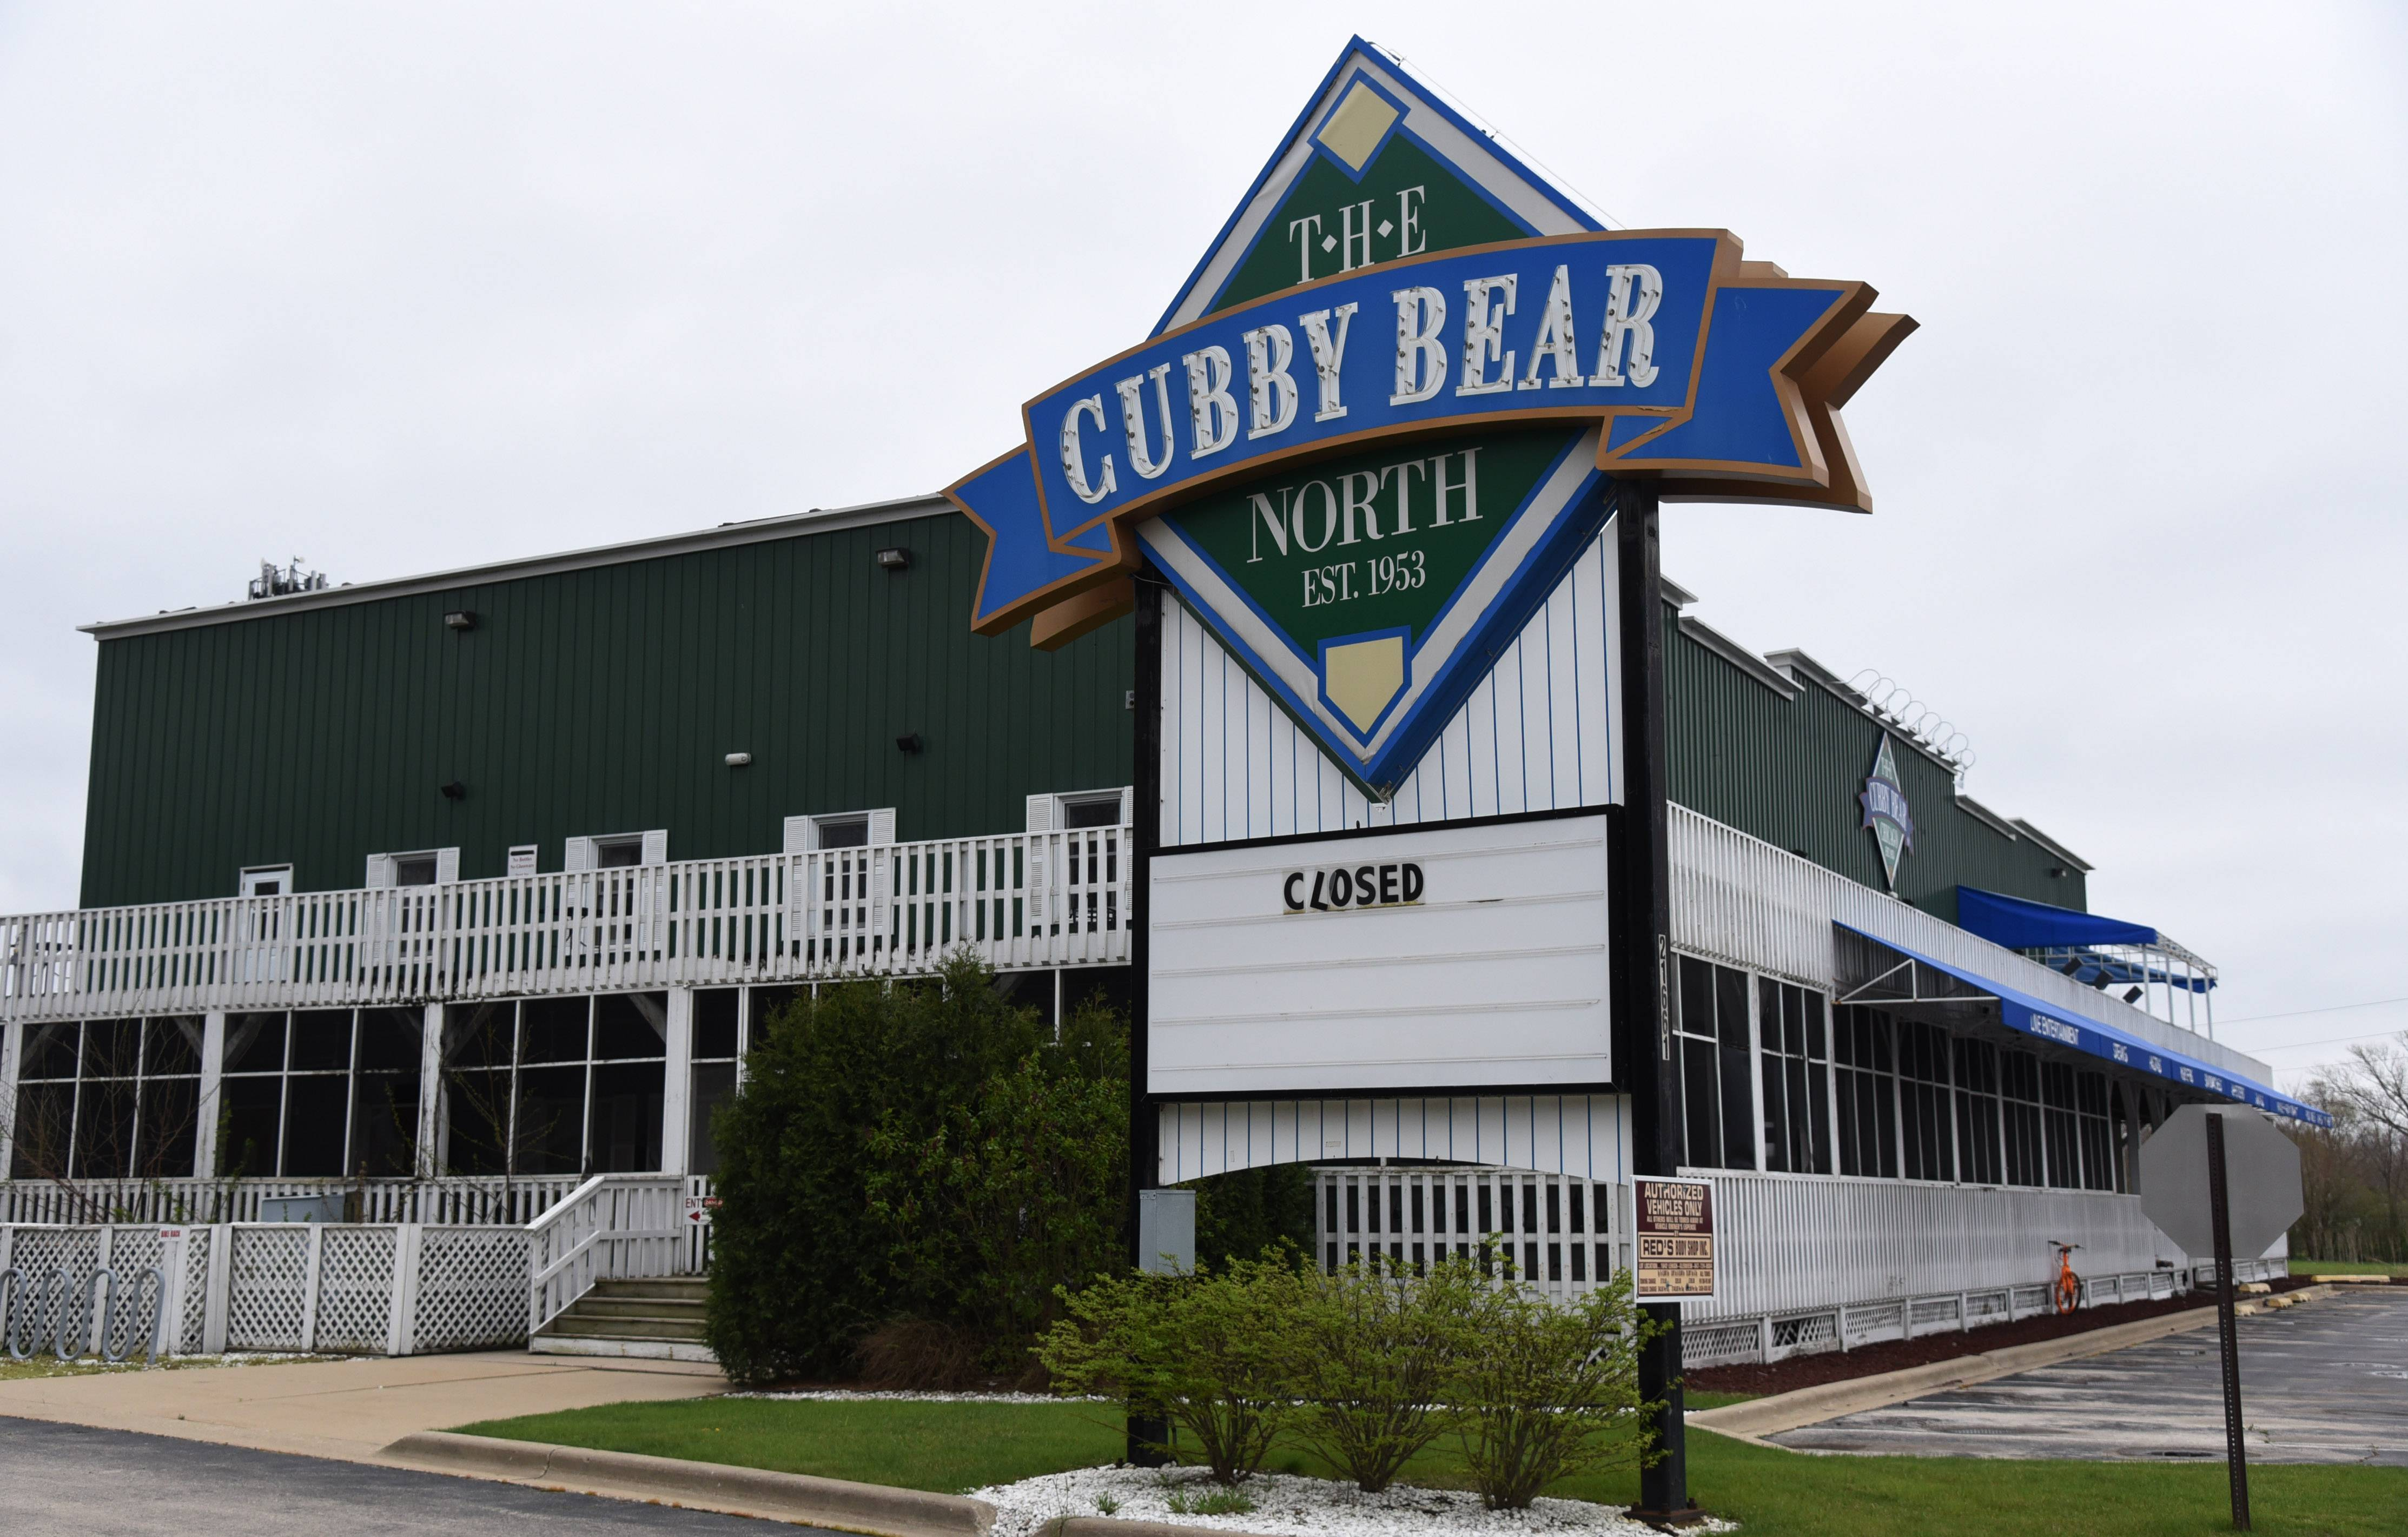 Banquet hall proposed for former Cubby Bear North in Lincolnshire